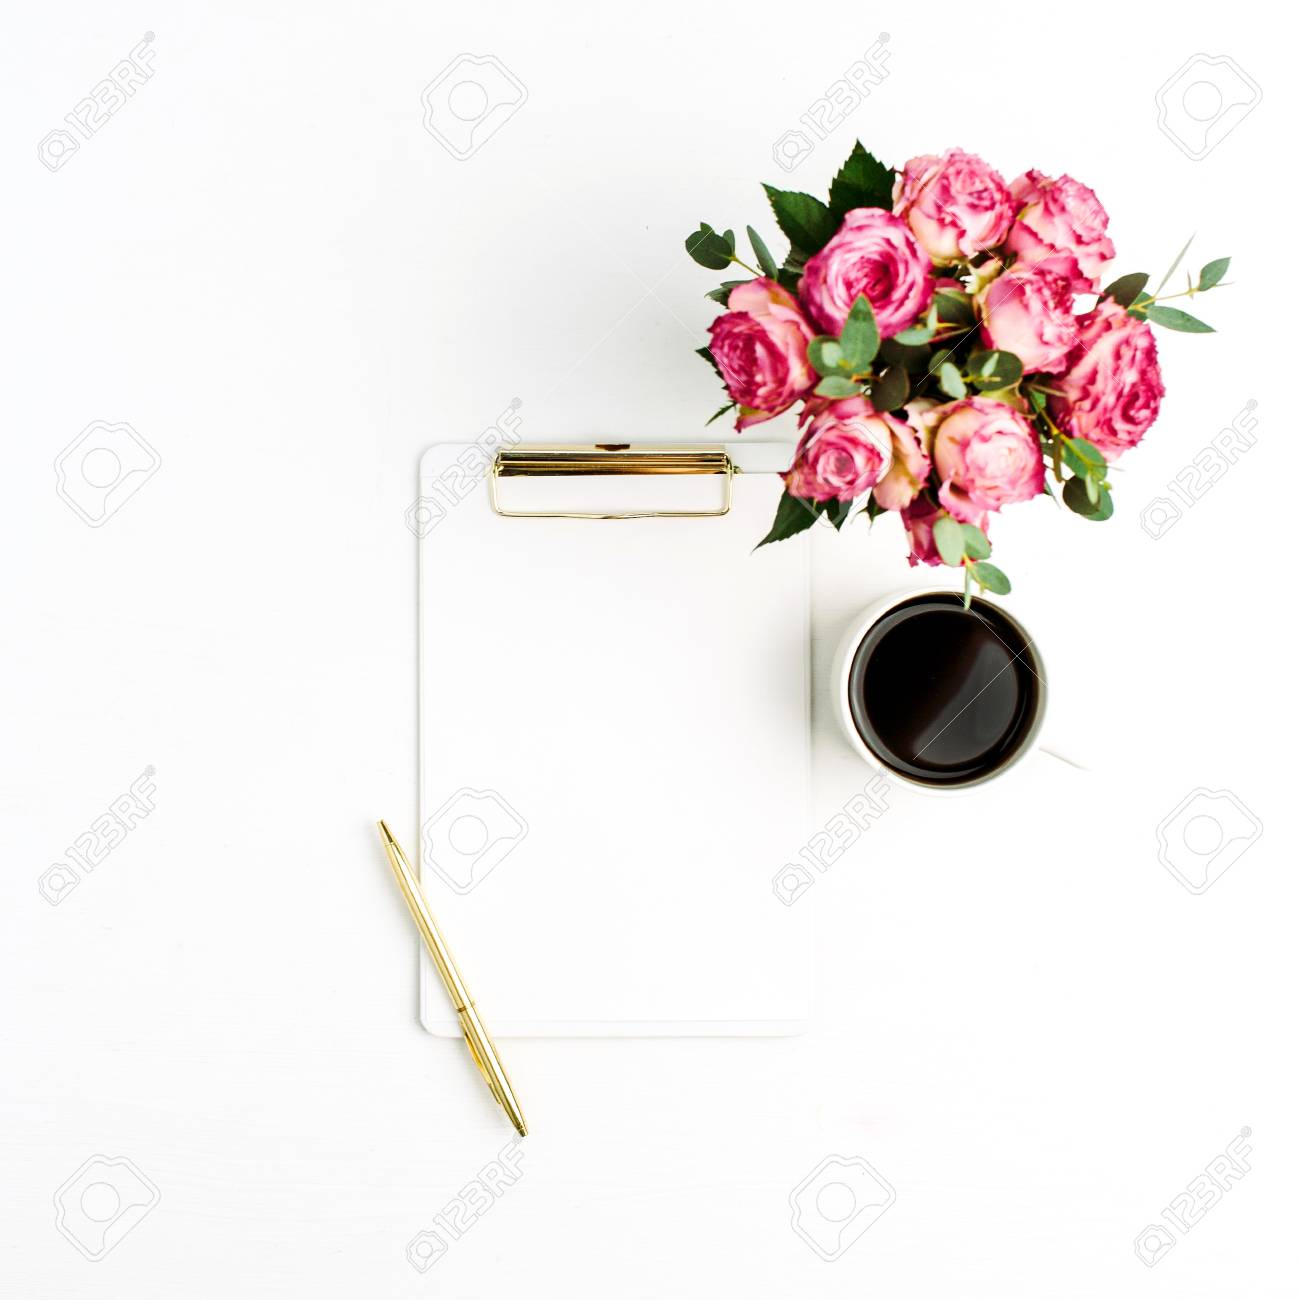 Clipboard, Rose Flowers Bouquet, Coffee And Pen On White Background ...